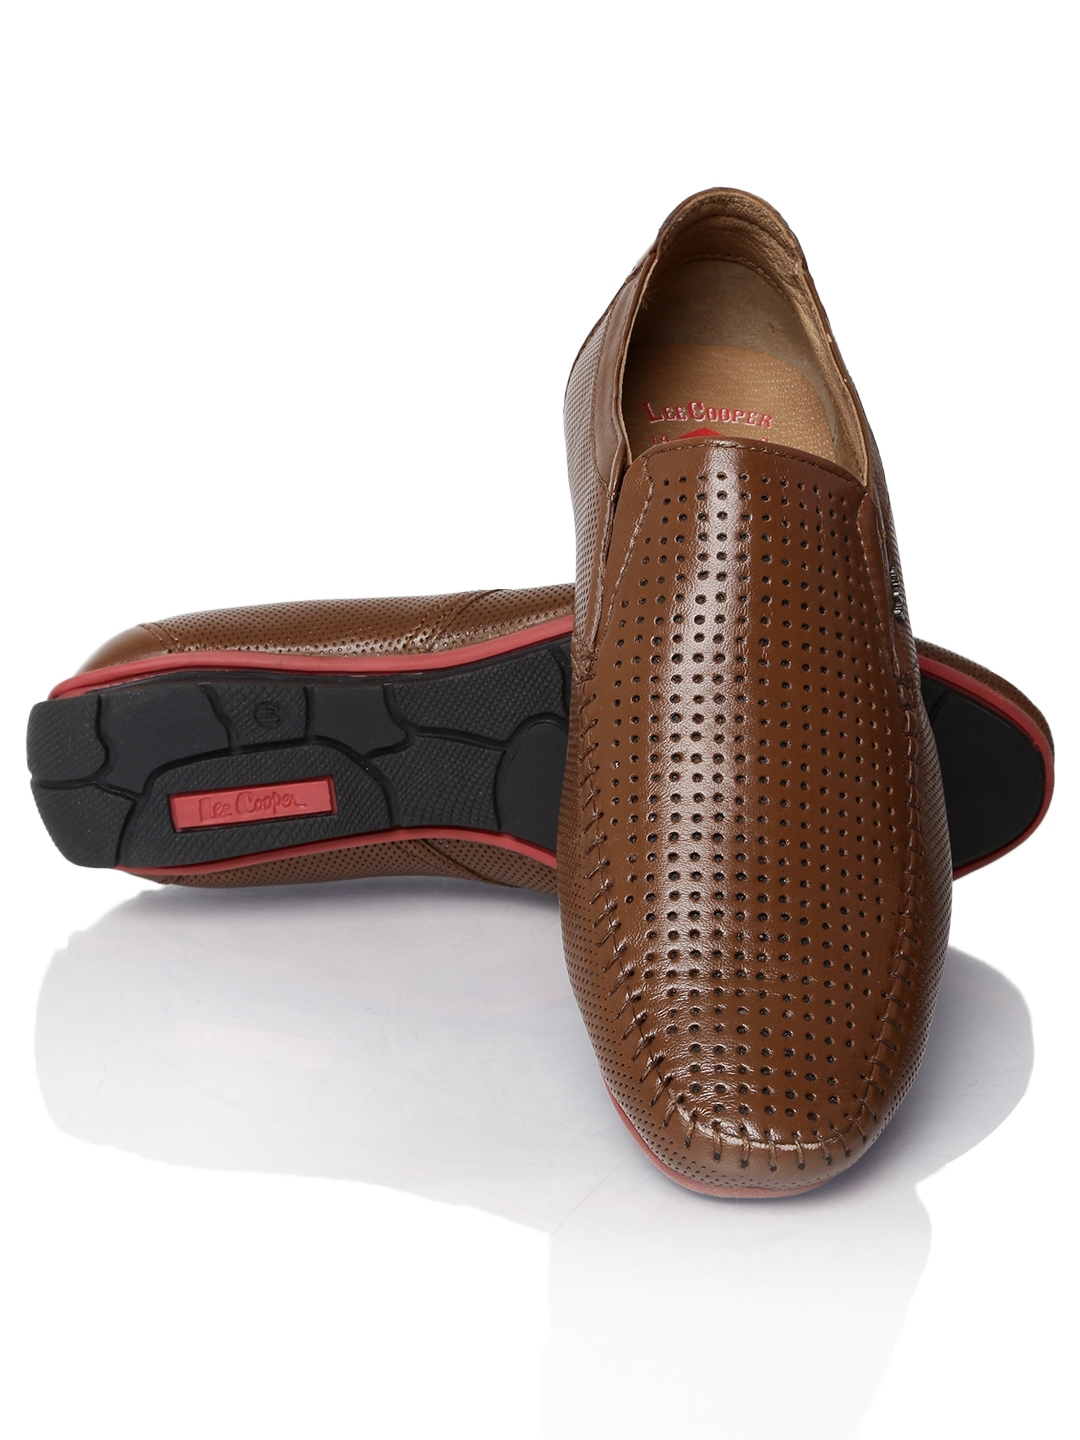 Lee Cooper Brown Textured Leather Slip On Shoes